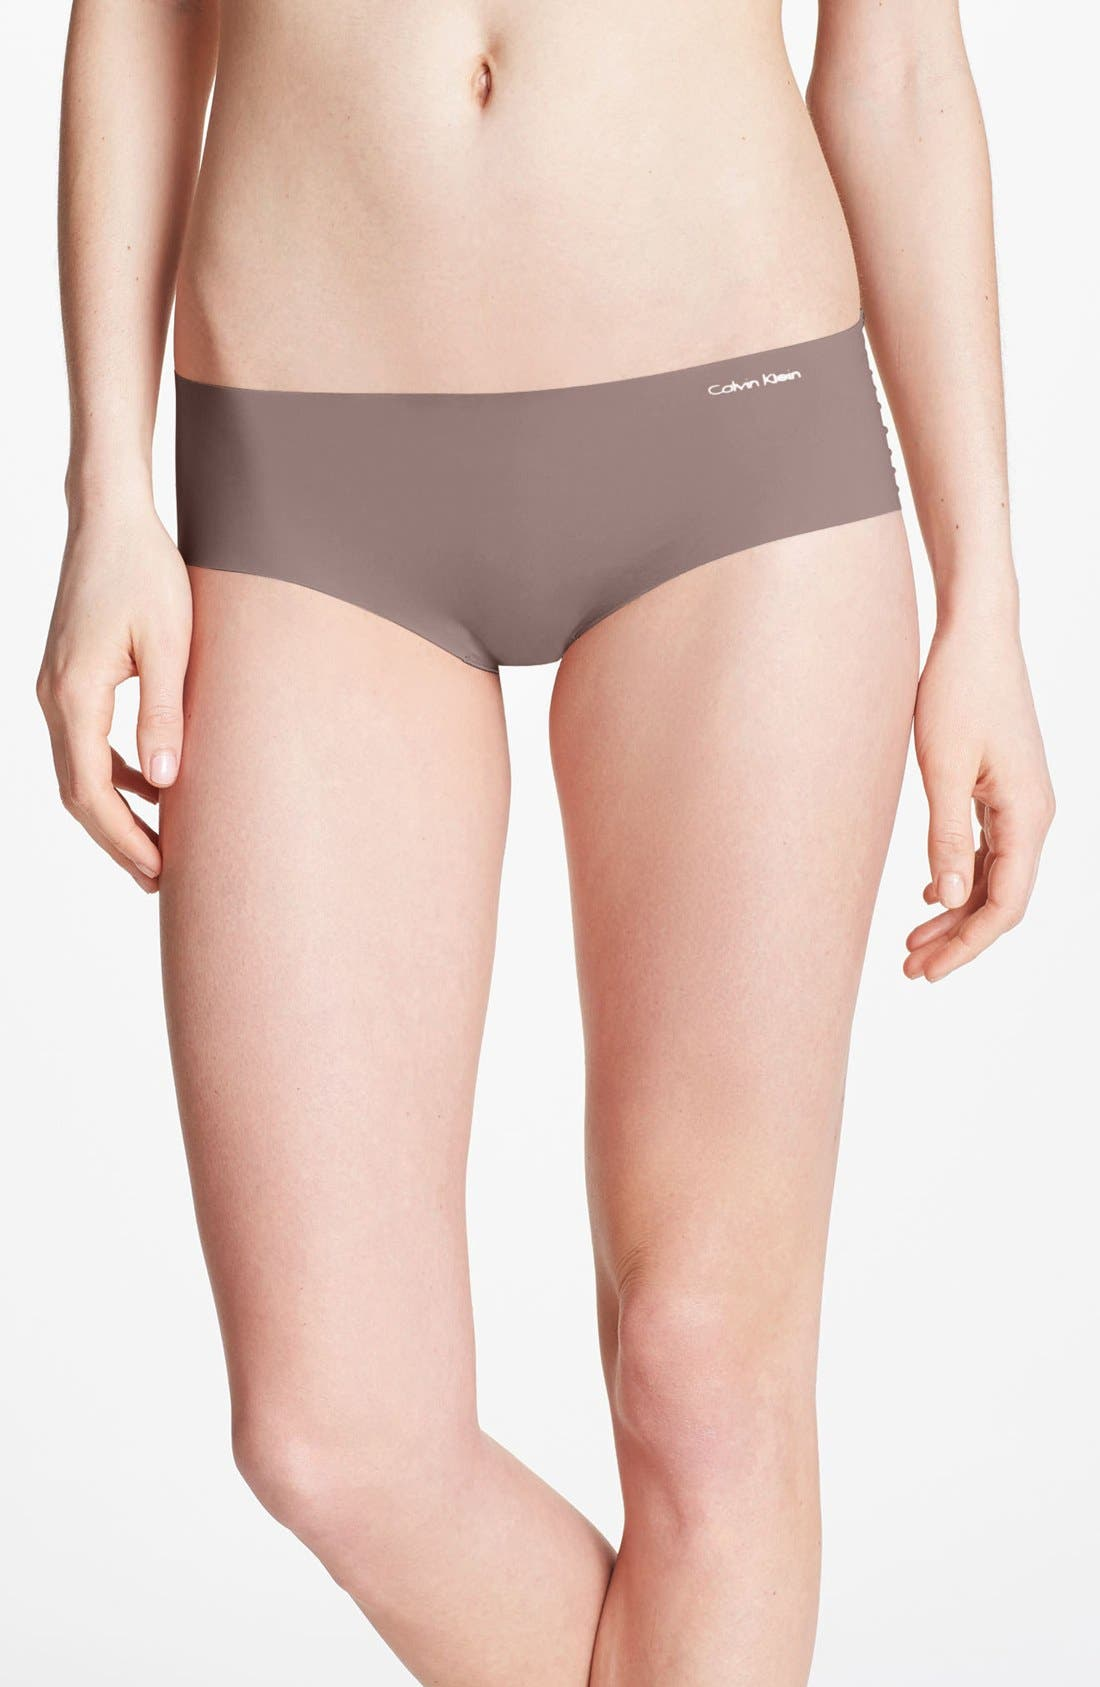 Alternate Image 1 Selected - Calvin Klein 'Invisibles' Hipster Briefs (3 for $33)